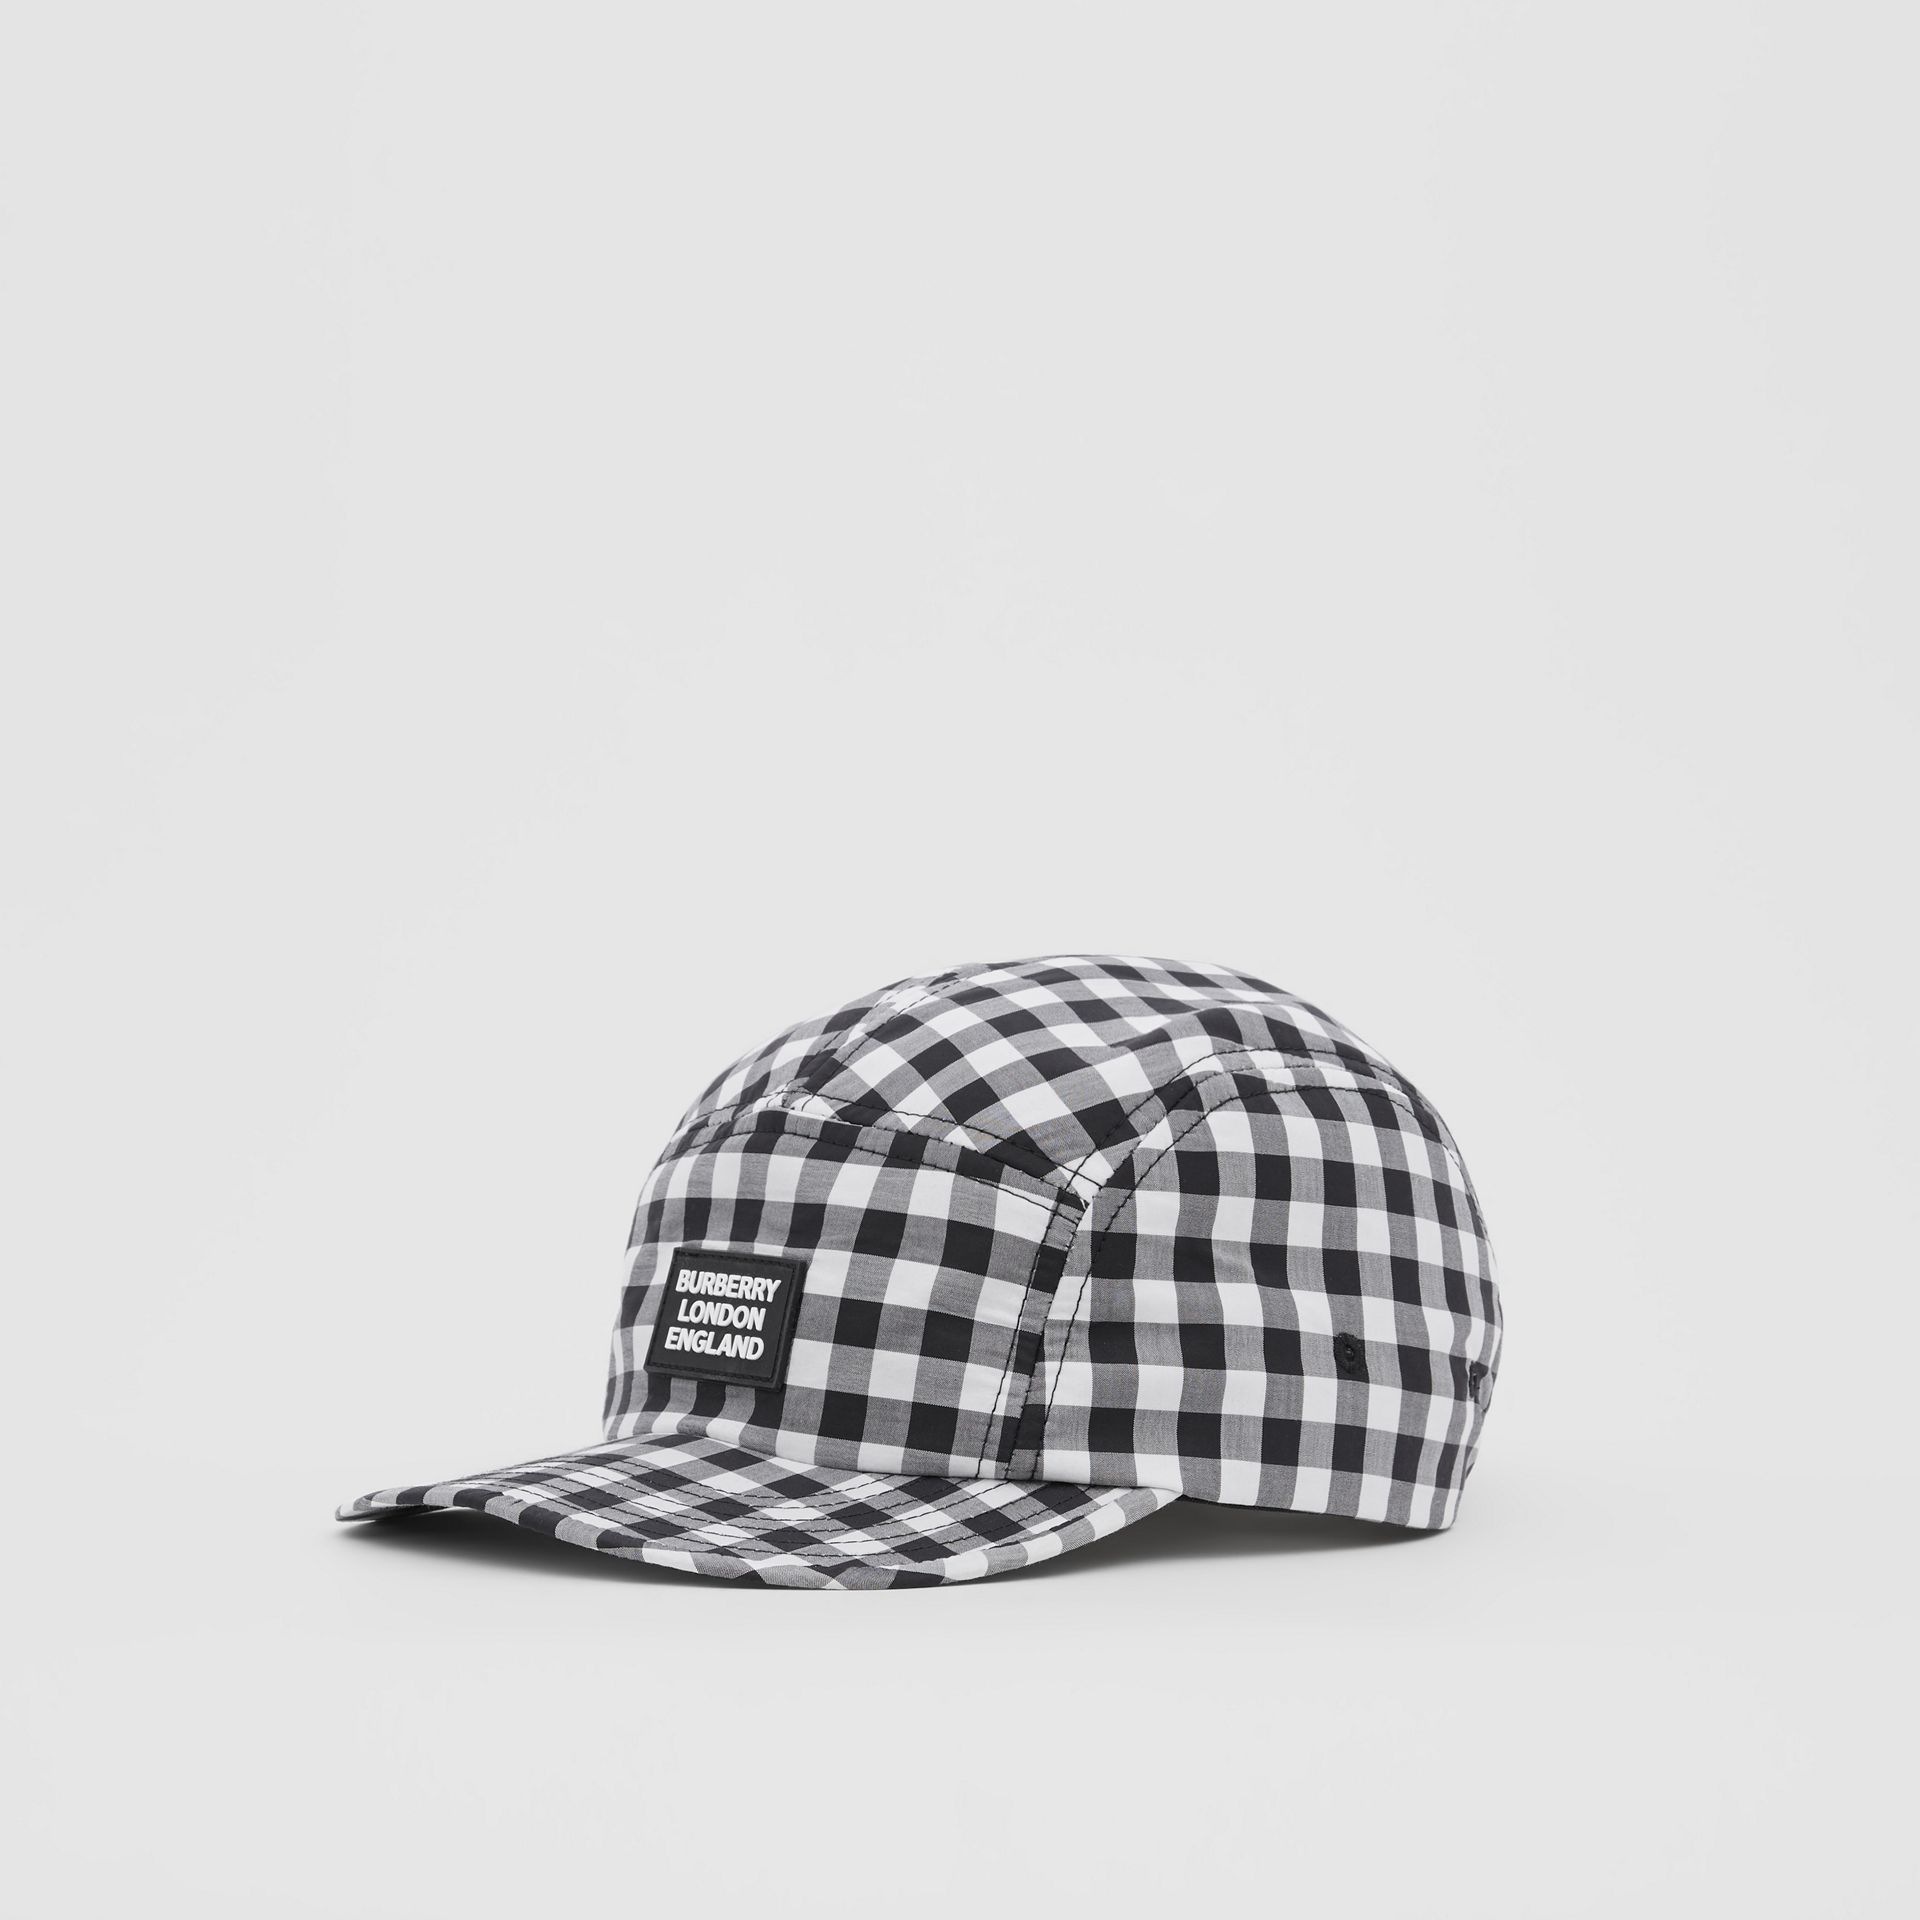 Logo Appliqué Gingham Cotton Cap in Black/white   Burberry United States - gallery image 5